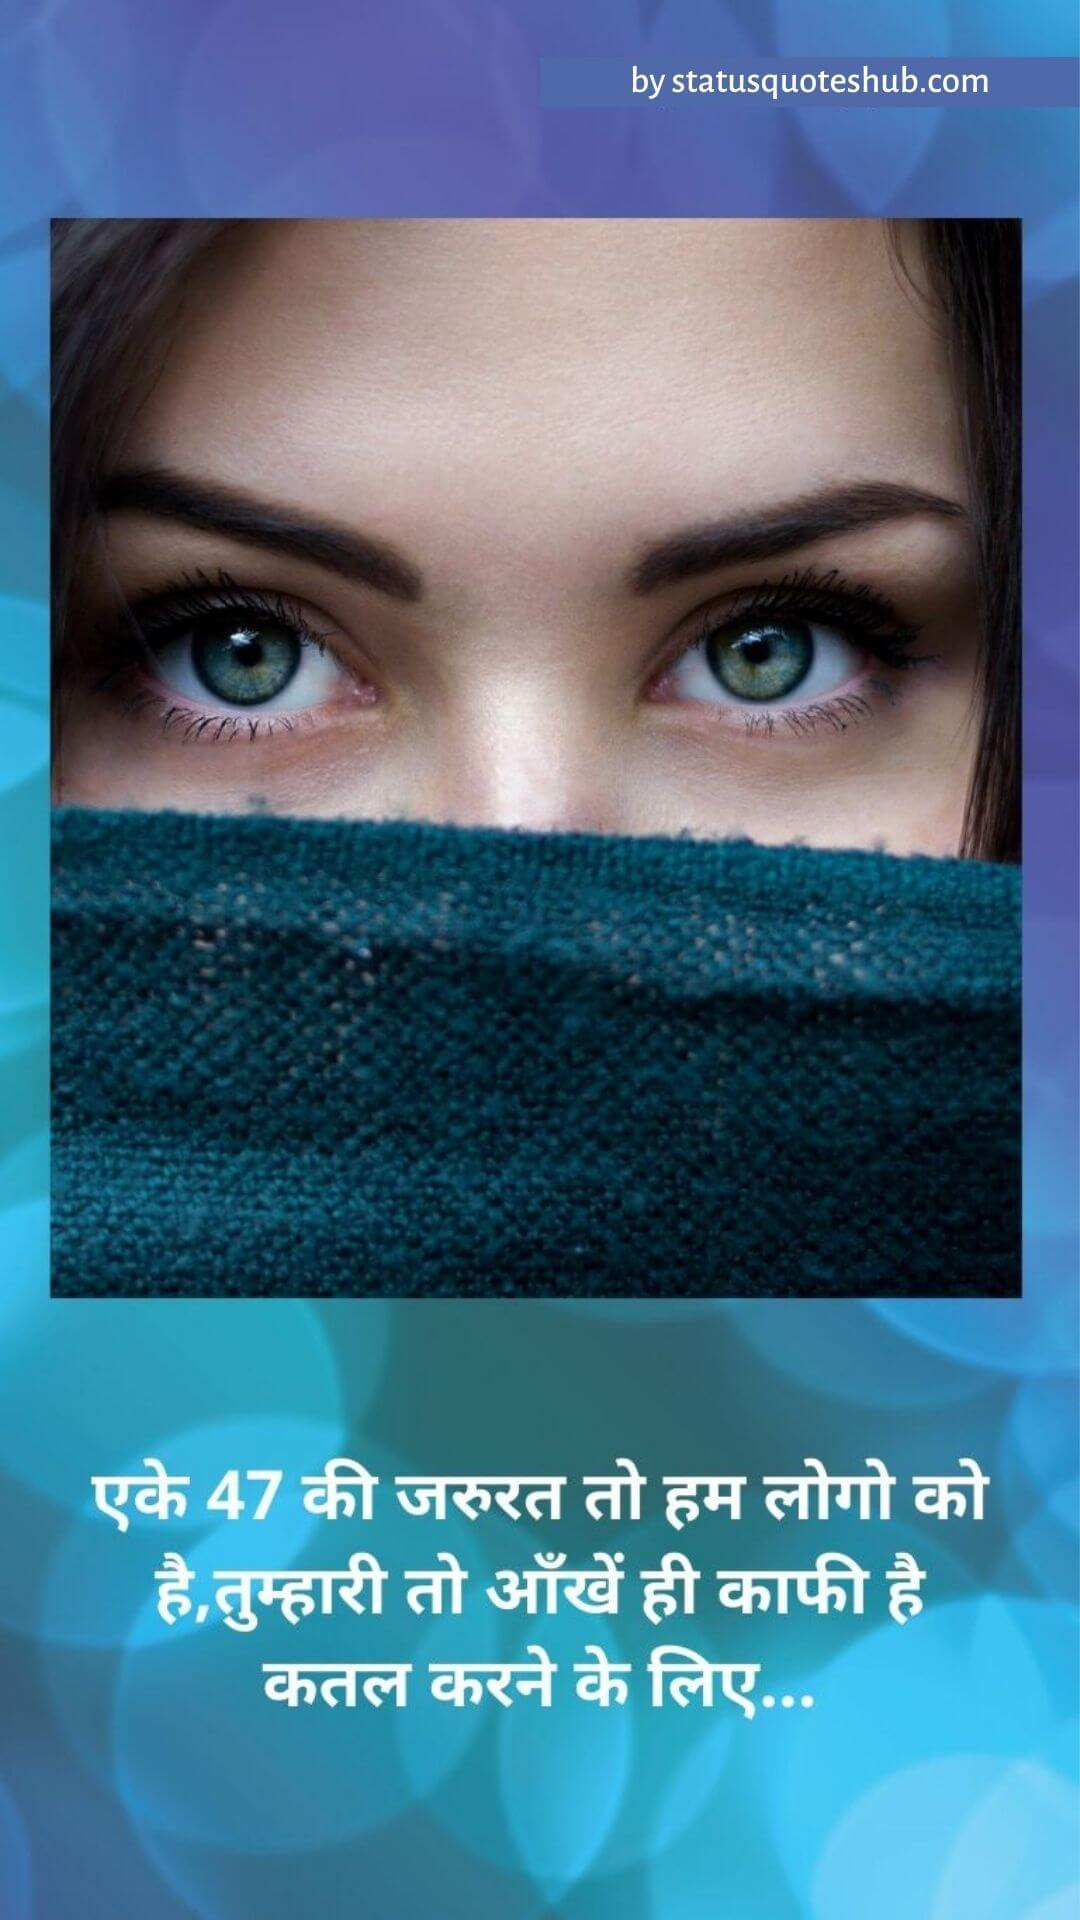 best status to impress a girl in hindi